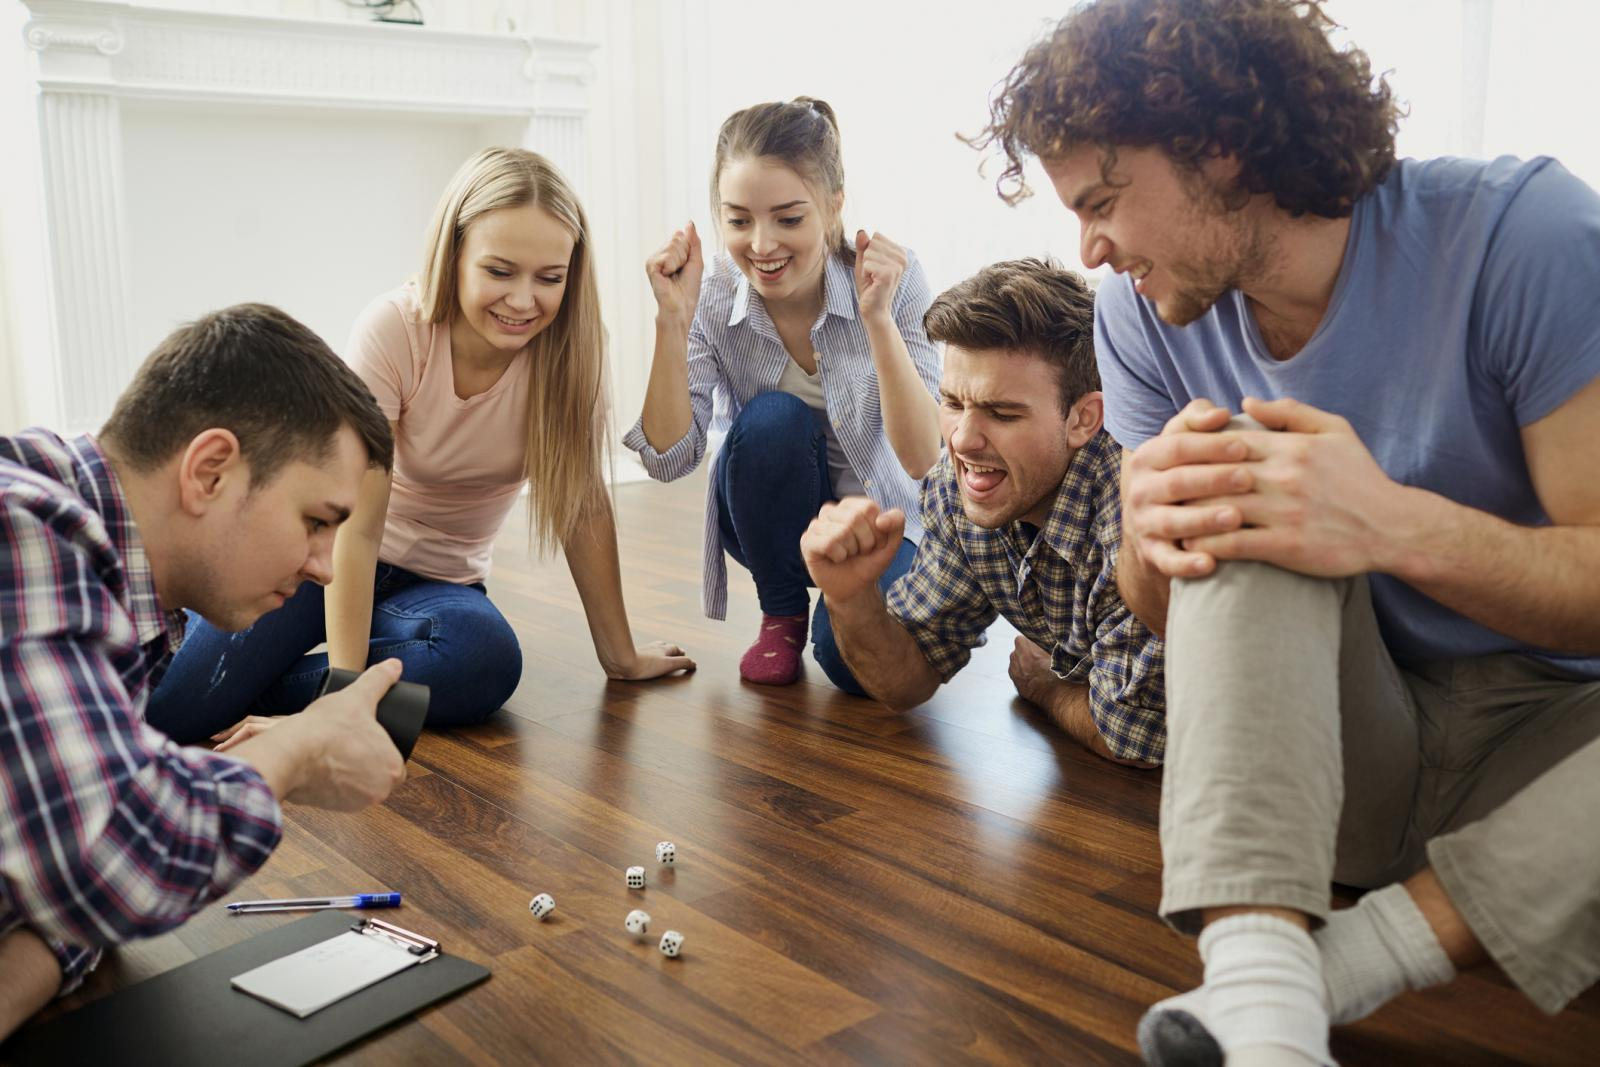 A group of friends play board games on the floor indoors